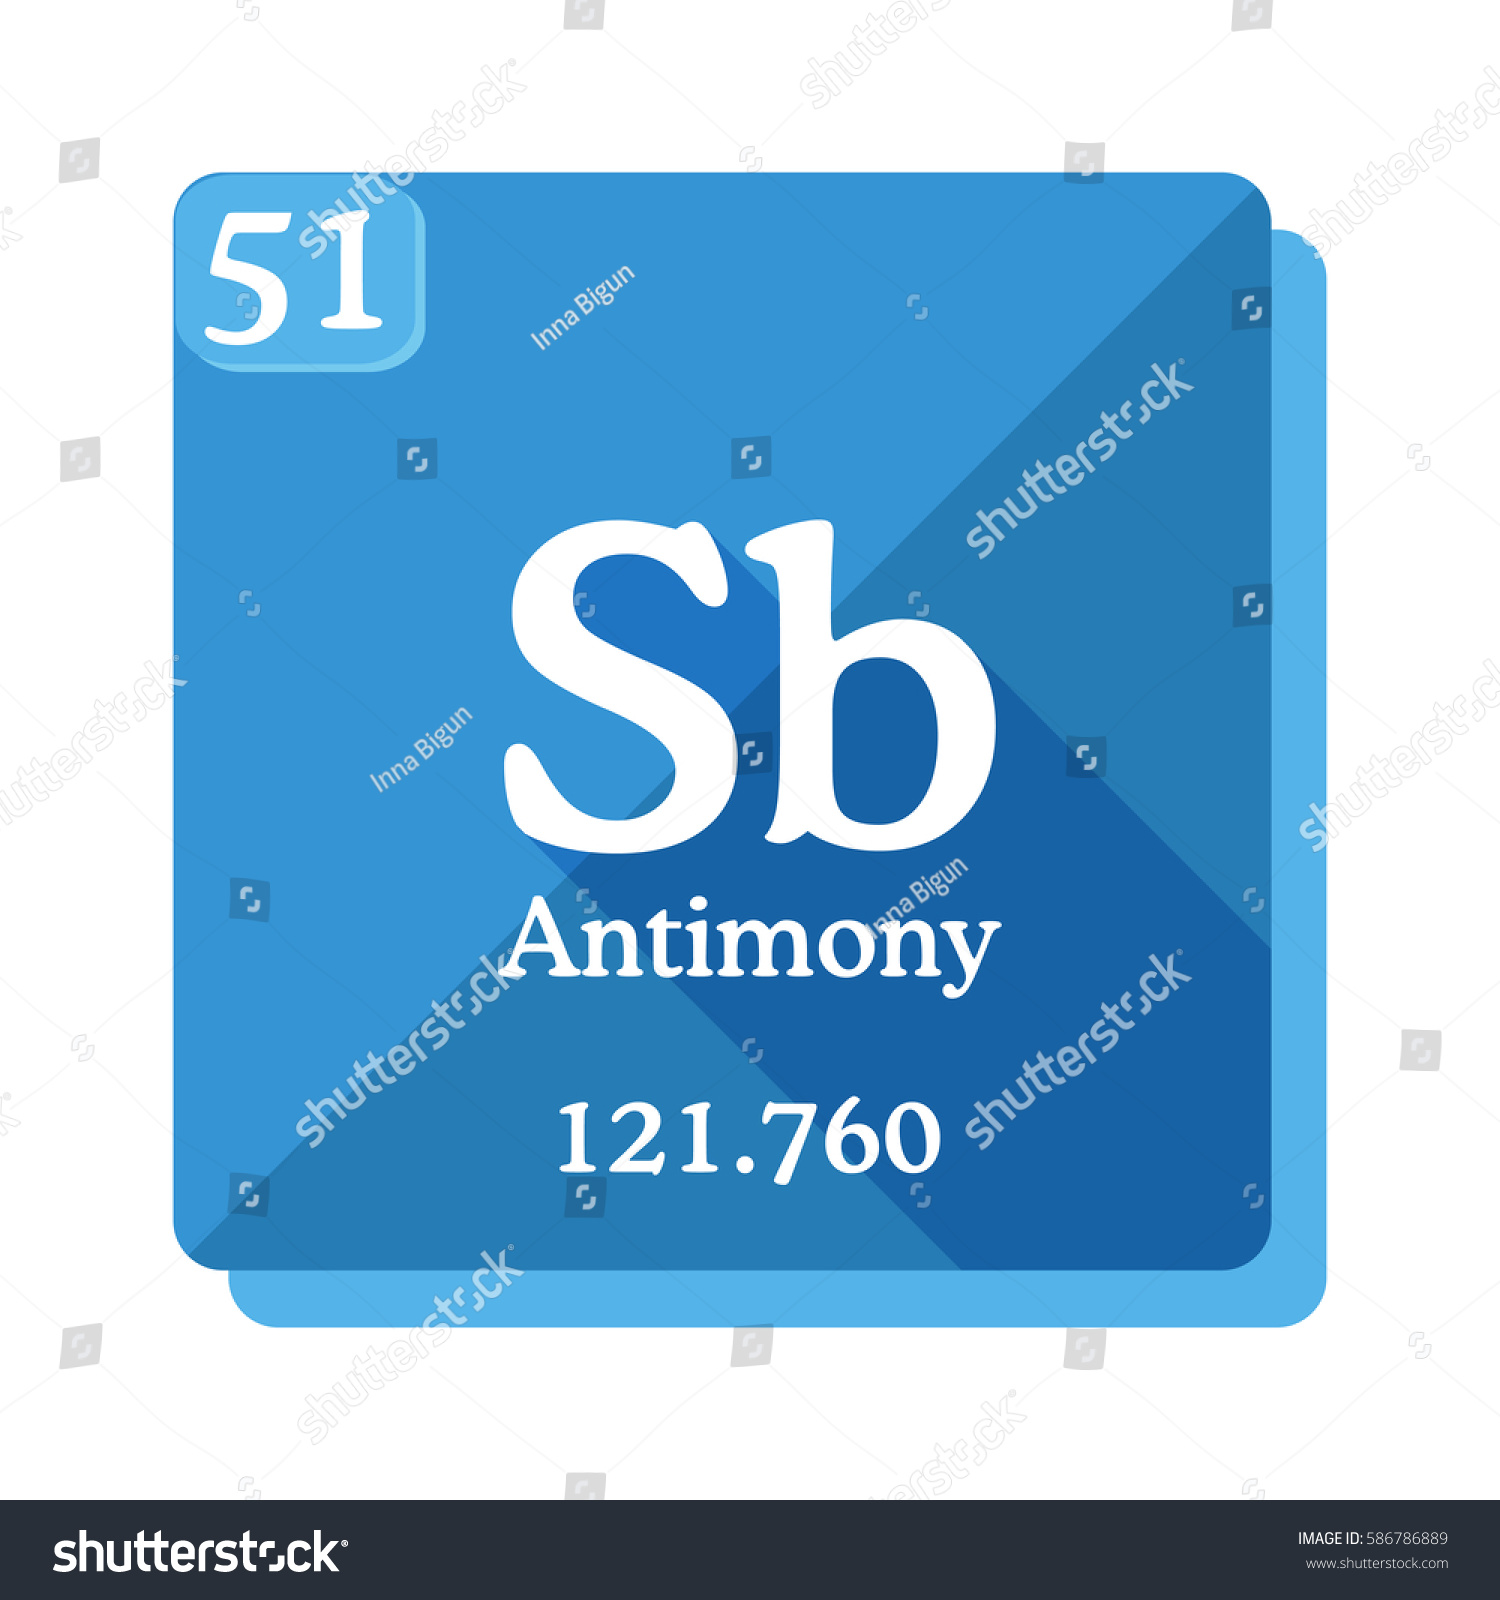 Antimony sb element periodic table flat stock vector 586786889 antimony sb element of the periodic table flat icon with long shadow biocorpaavc Images